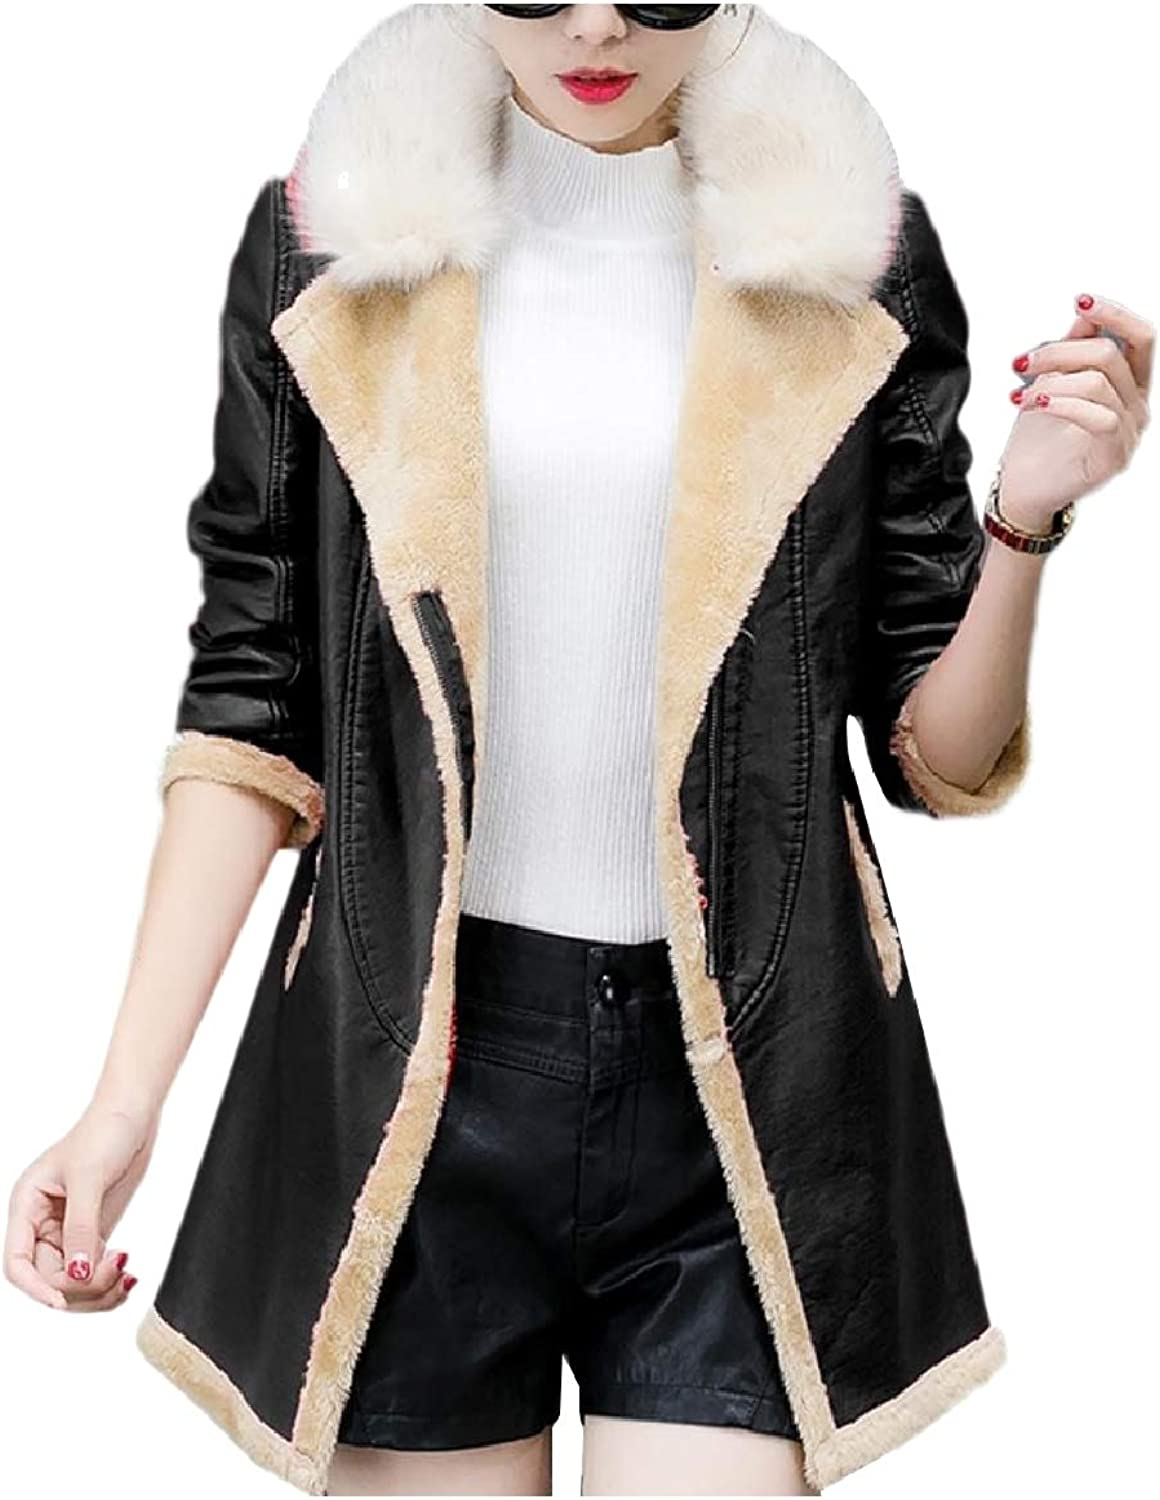 Abetteric Womens Thickened Fur Collar Zip Fall Winter PU Leather Jackets